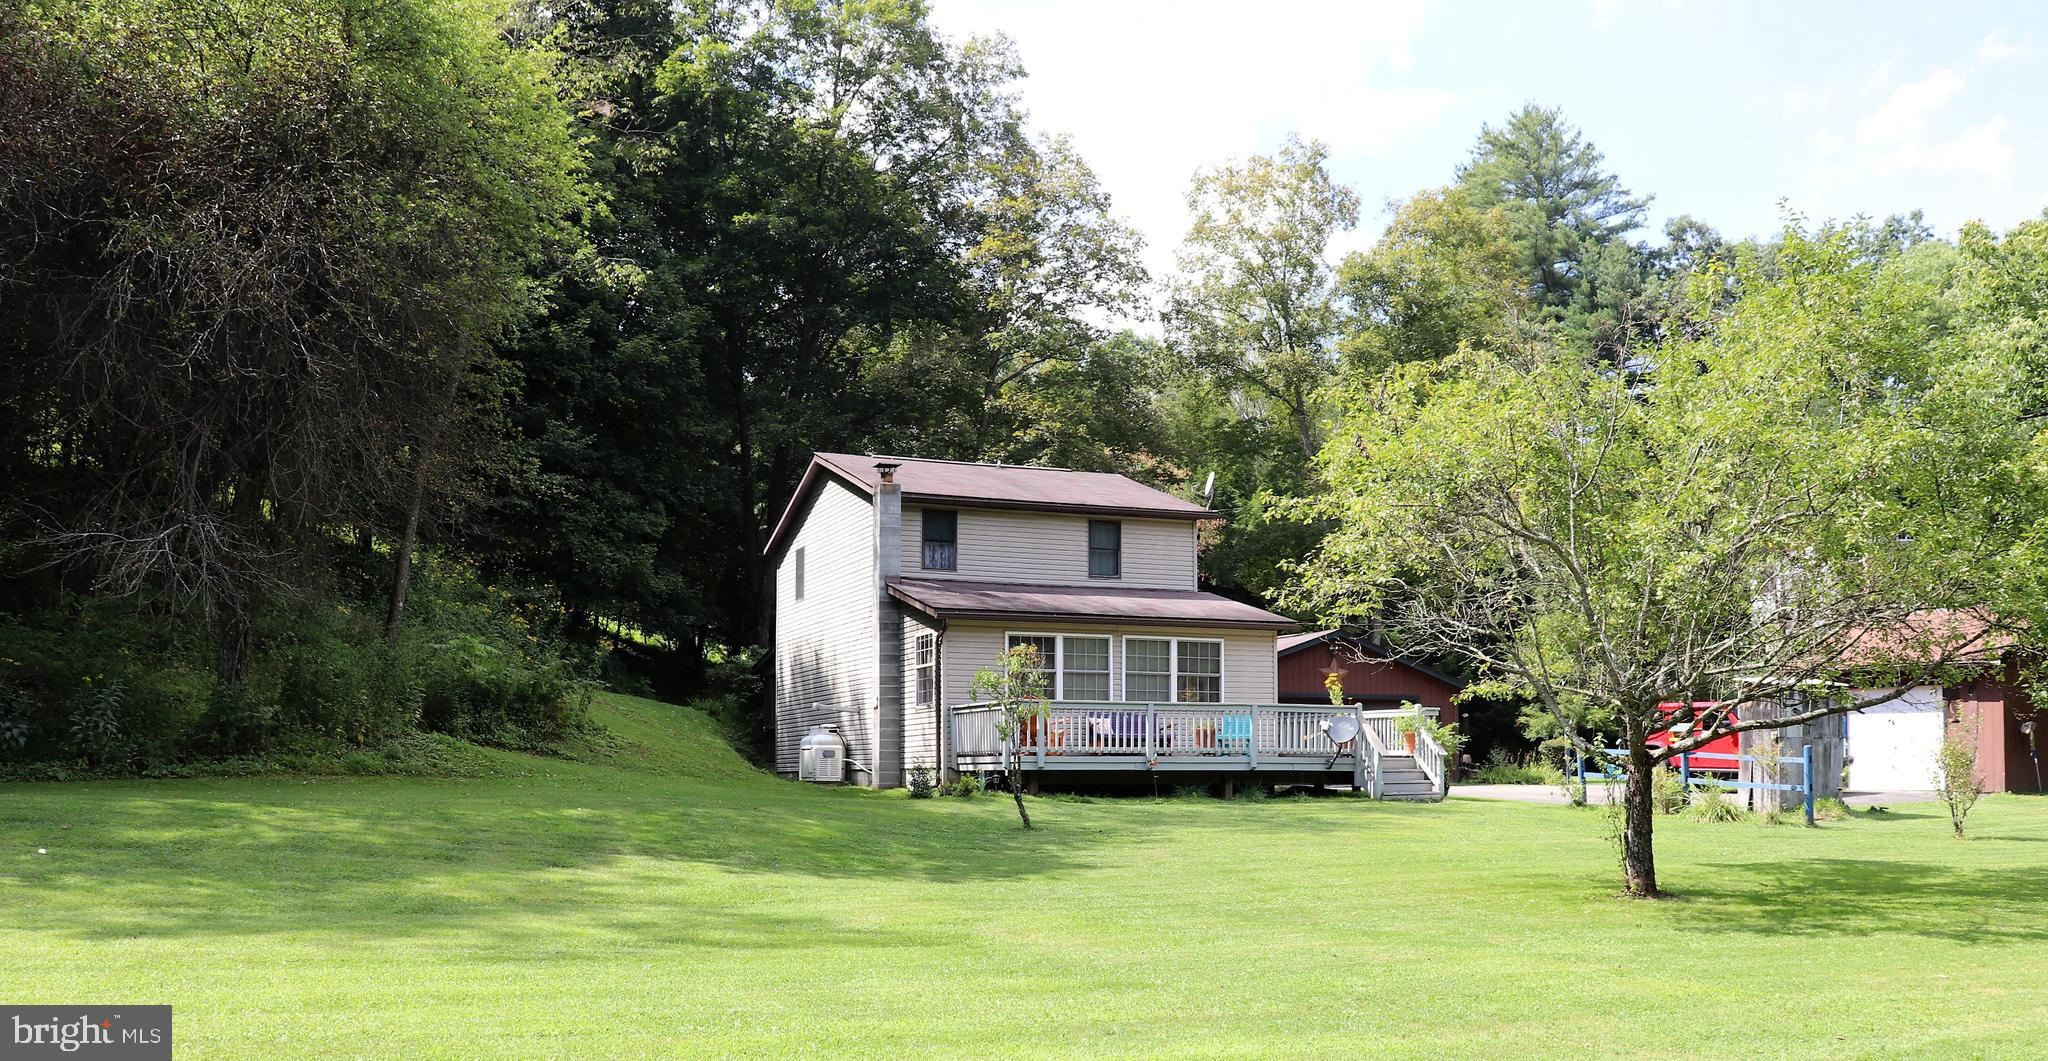 111 BRETHERN SUMMIT RD, FARMINGTON, PA 15437